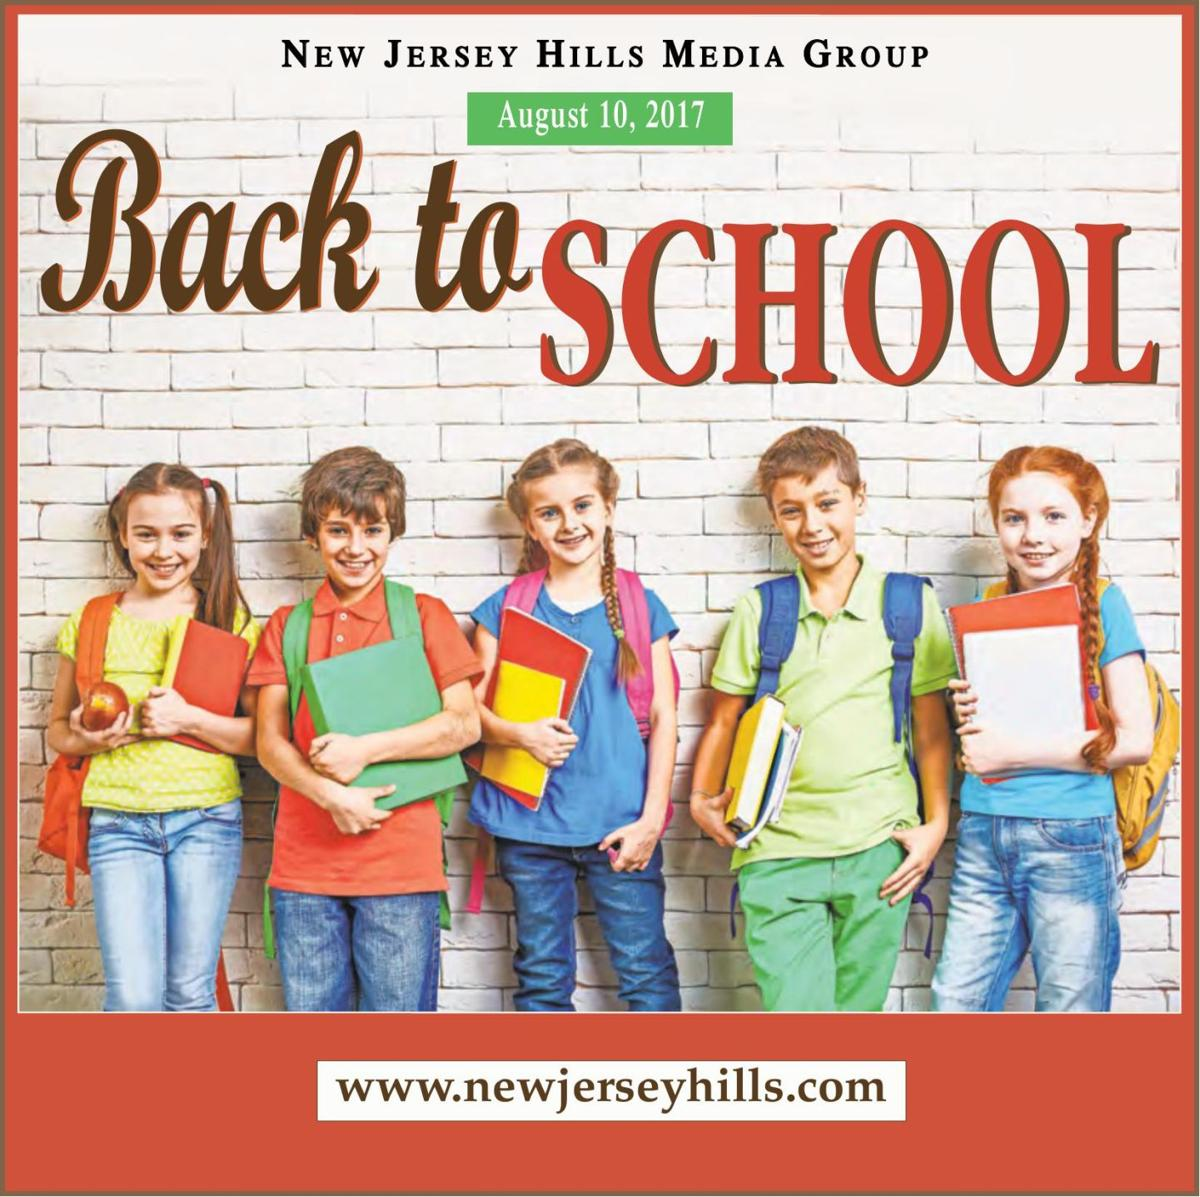 Back To School - August 10, 2017